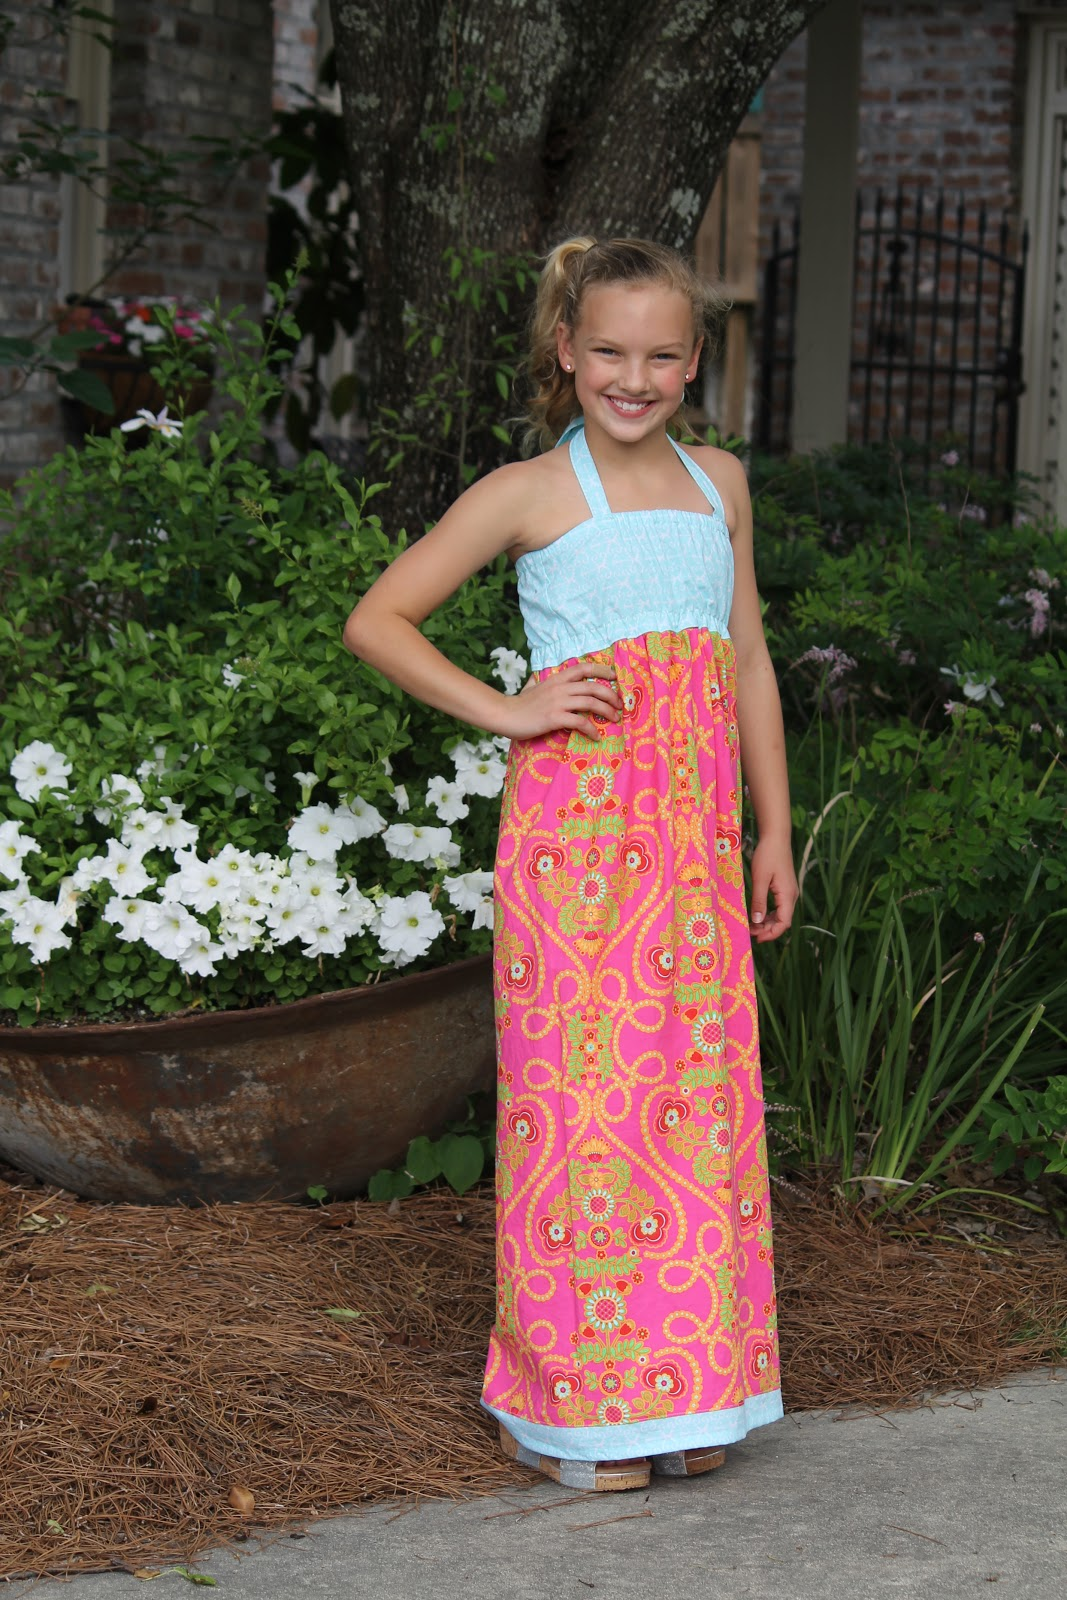 You searched for: maxi dress tween! Etsy is the home to thousands of handmade, vintage, and one-of-a-kind products and gifts related to your search. No matter what you're looking for or where you are in the world, our global marketplace of sellers can help you find unique and affordable options. Let's get started!